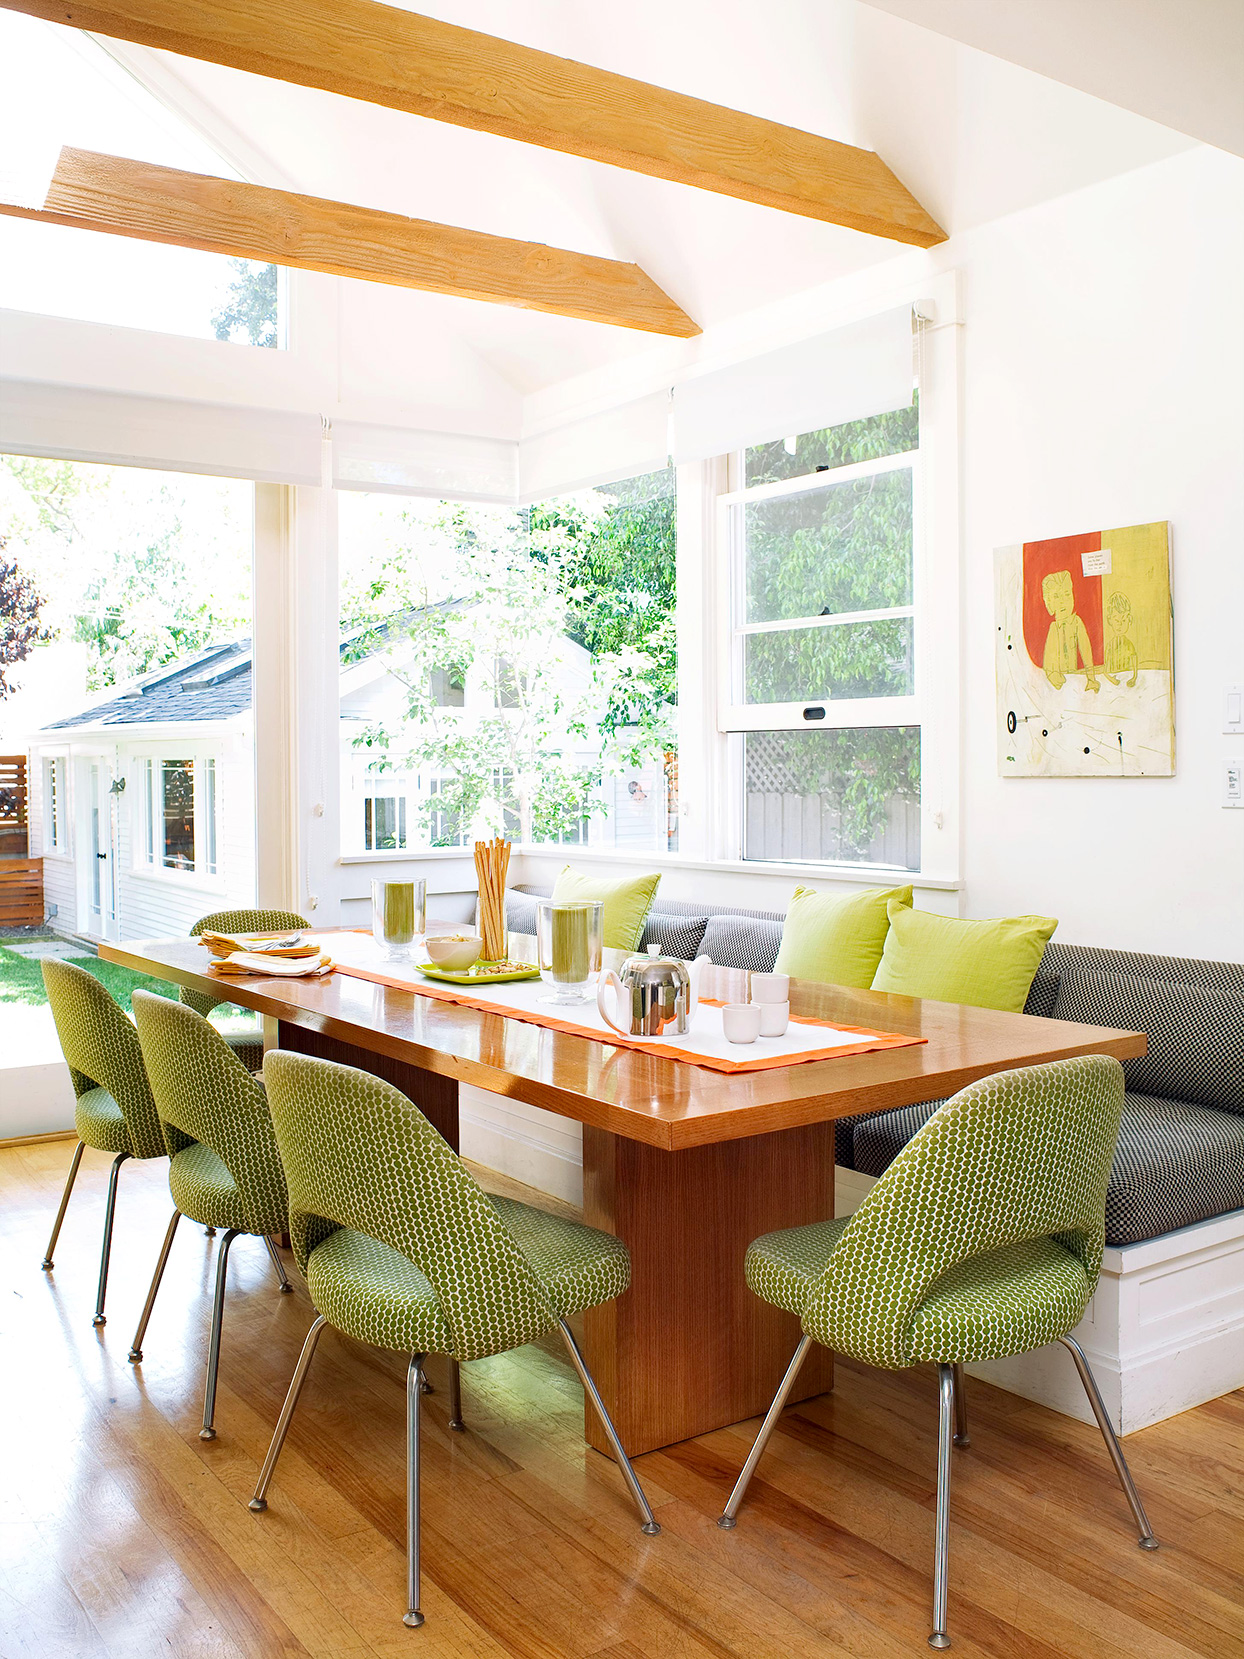 dining area with wooden table and green chairs